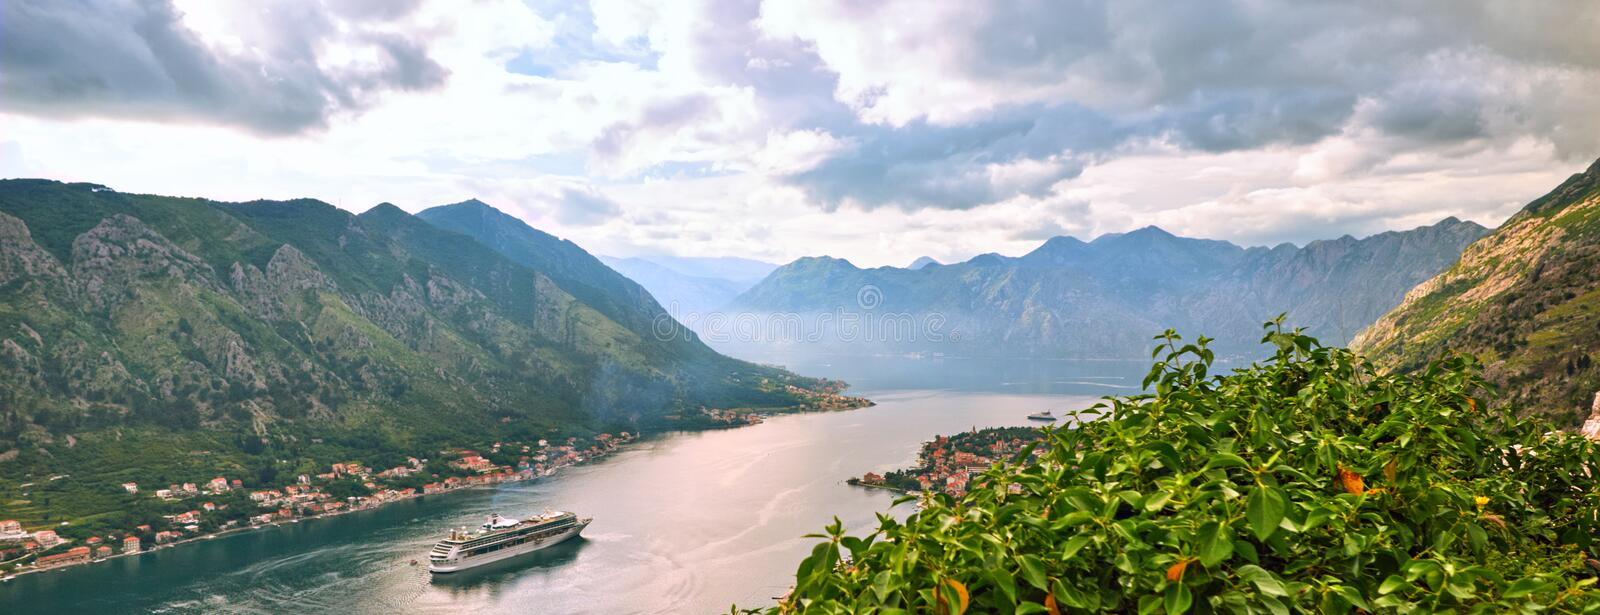 Picturesque sea view of Boka Kotorska, Montenegro, Kotor old town. Shoot from air, from mountain fortification, wide angle, sunset.  royalty free stock images